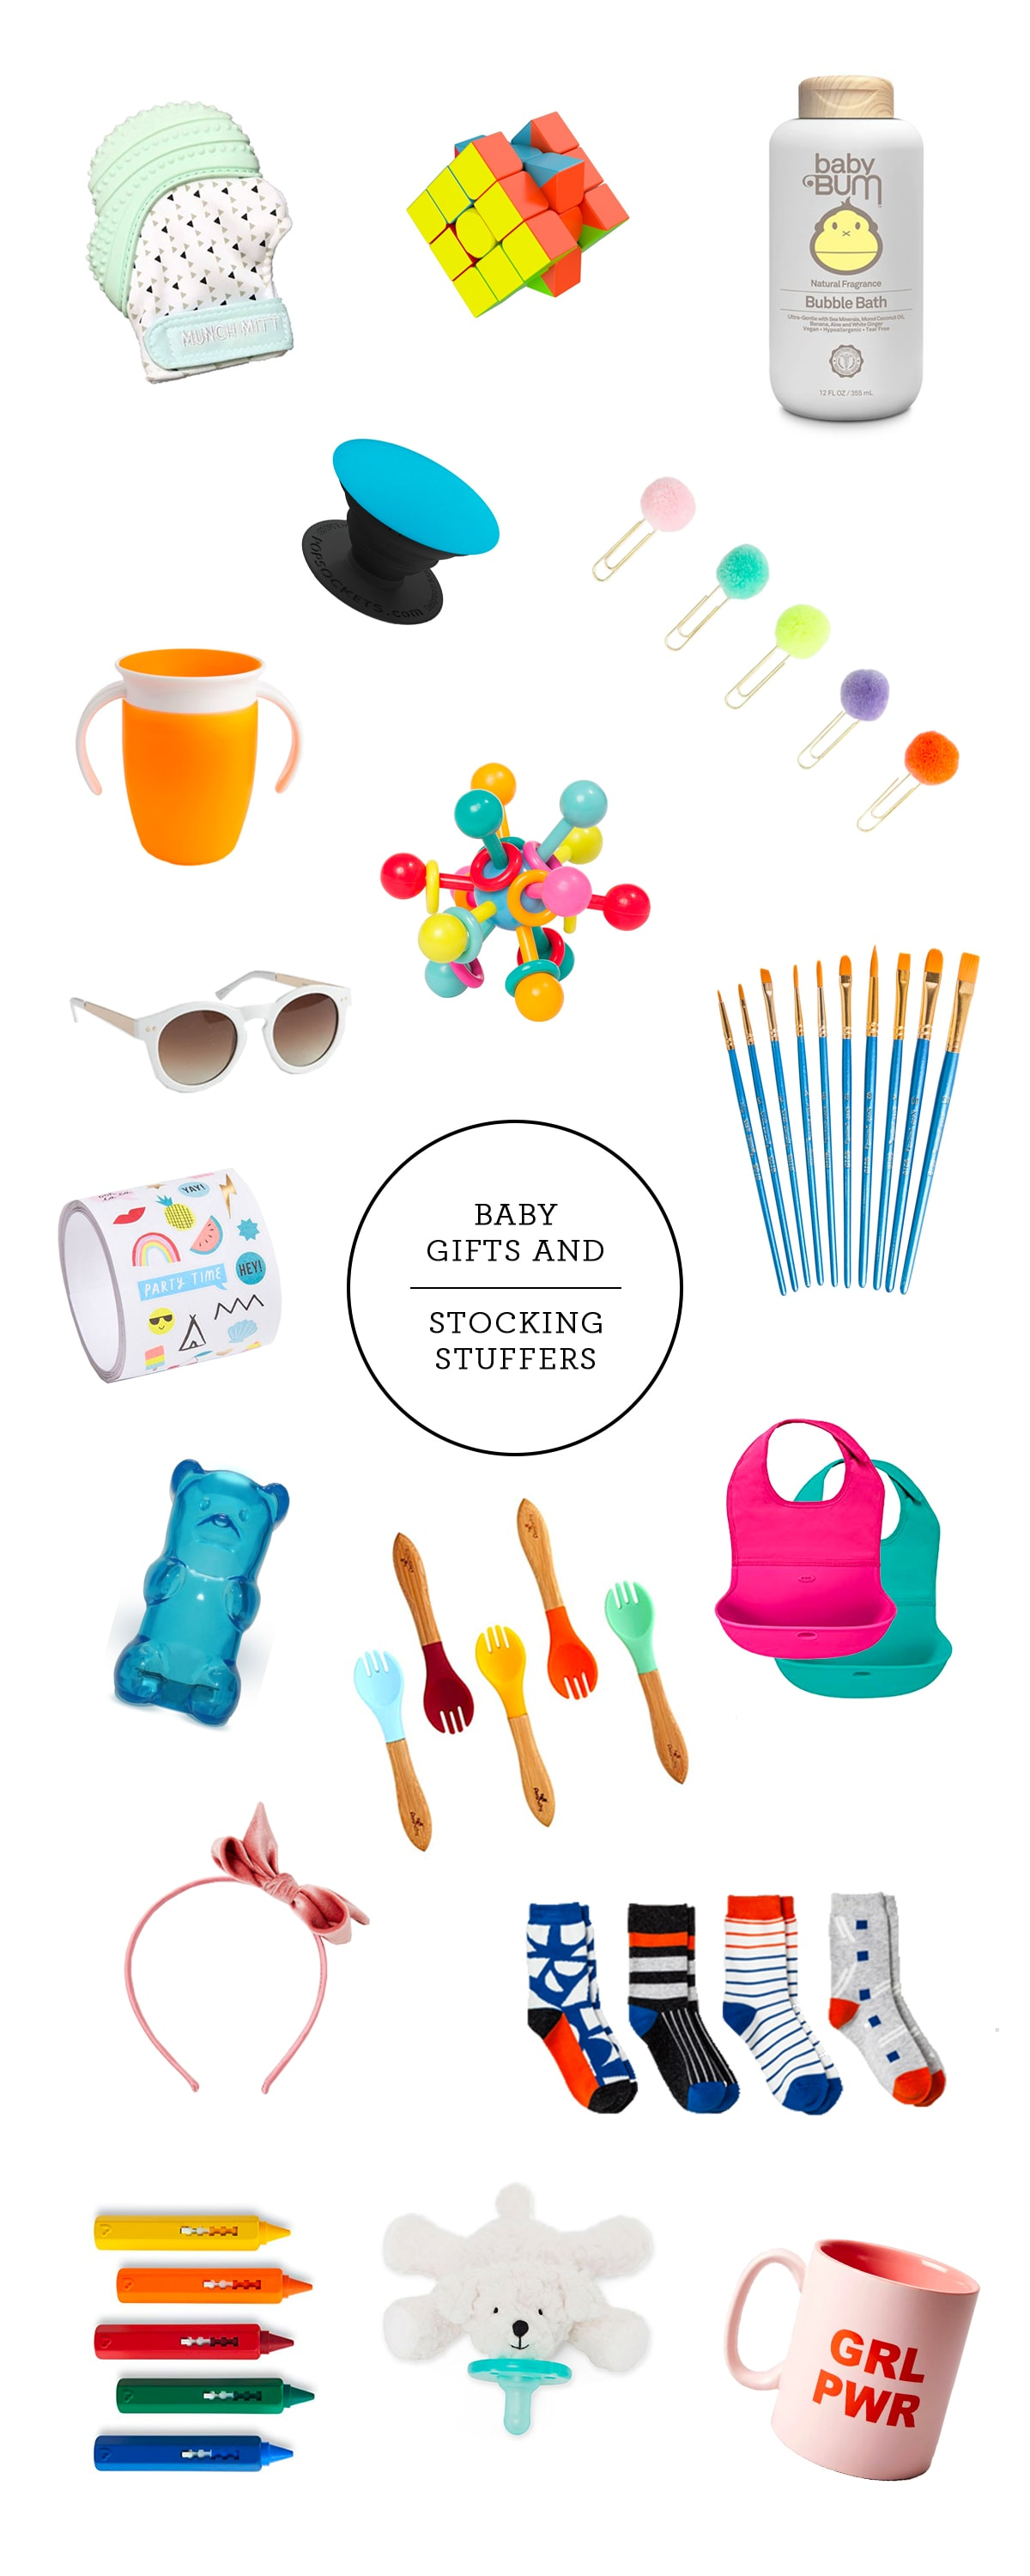 kids stocking stuffer shopping guide by top Houston lifestyle blogger Ashley Rose of Sugar and Cloth #holidays #christmas #shoppingguide #gifts #holidaygifts #christmasgifts